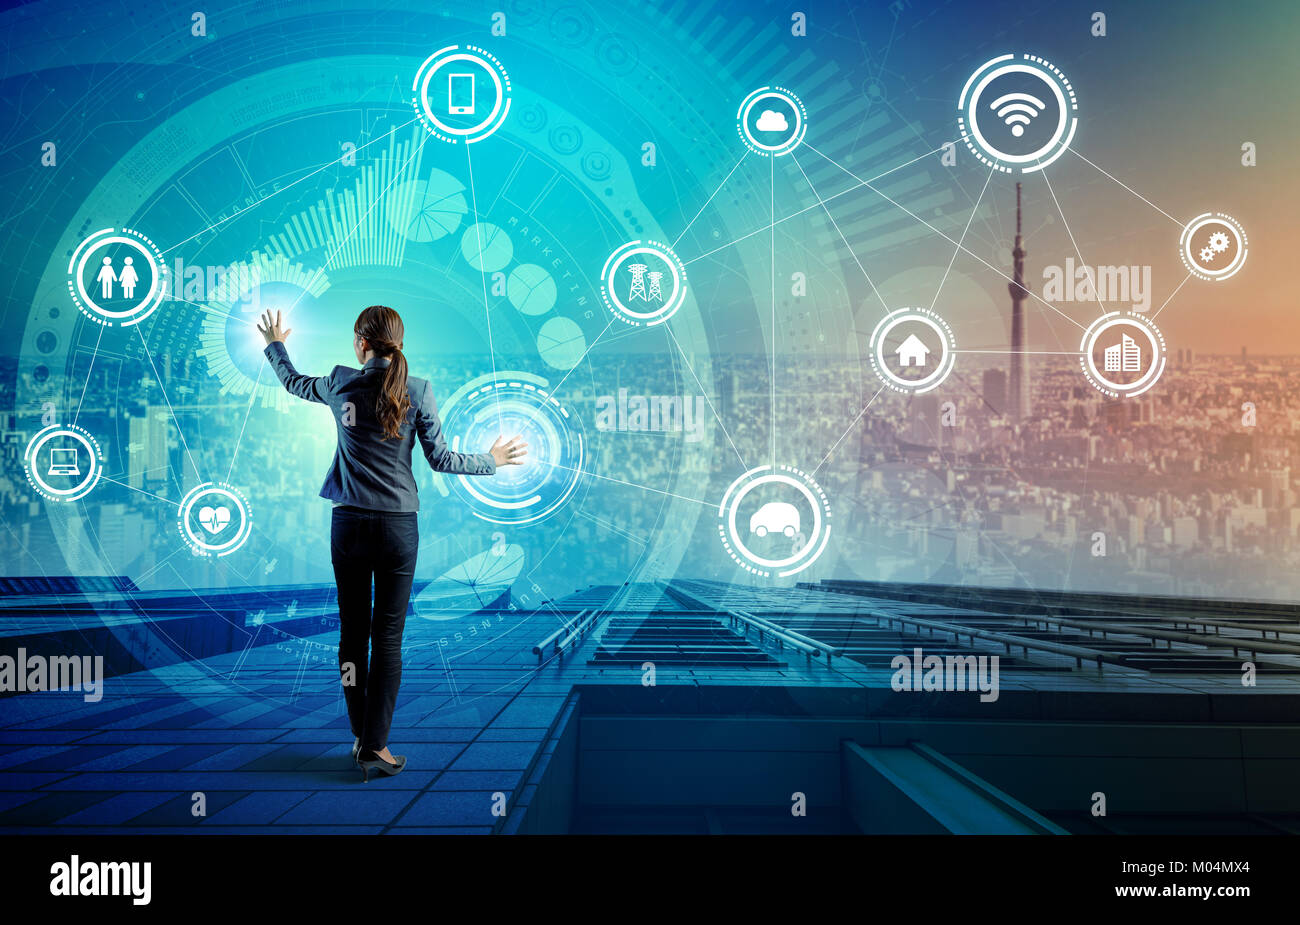 Internet des Objets (IoT) concept. Fintech(Financial Technology). Les TIC (technologies de l'information et Photo Stock